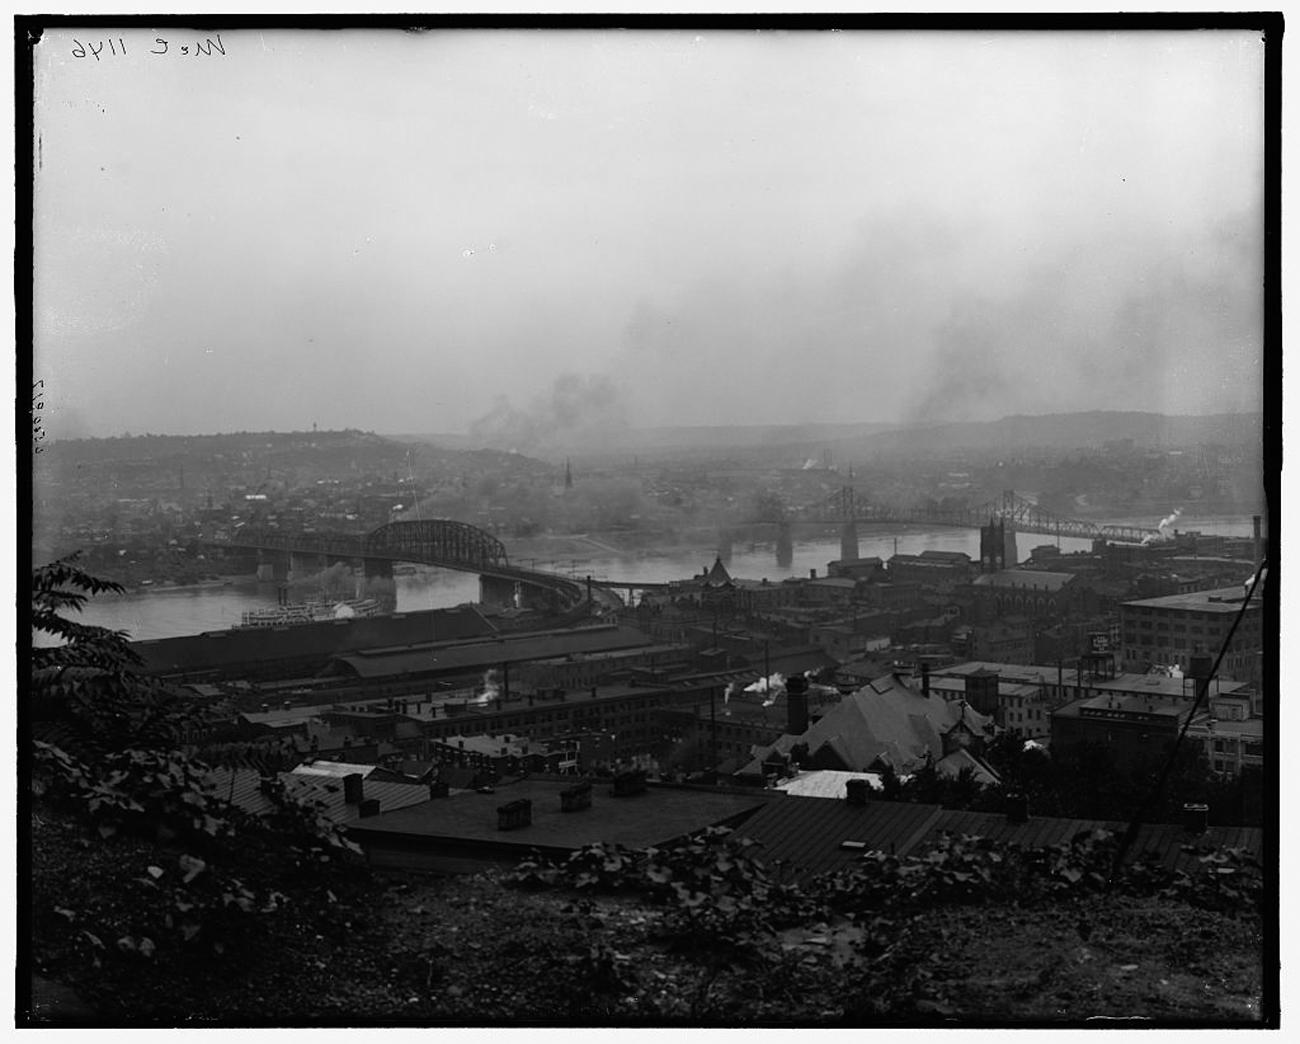 """View from Mount Adams, showing Ohio River, L. & N. Ry. bridge & S.R.R. bridge, Cincinnati, Ohio"" some time between 1910 and 1920 / Image: Detroit Publishing Co. accessed via the Library of Congress // Published: 3.4.19"